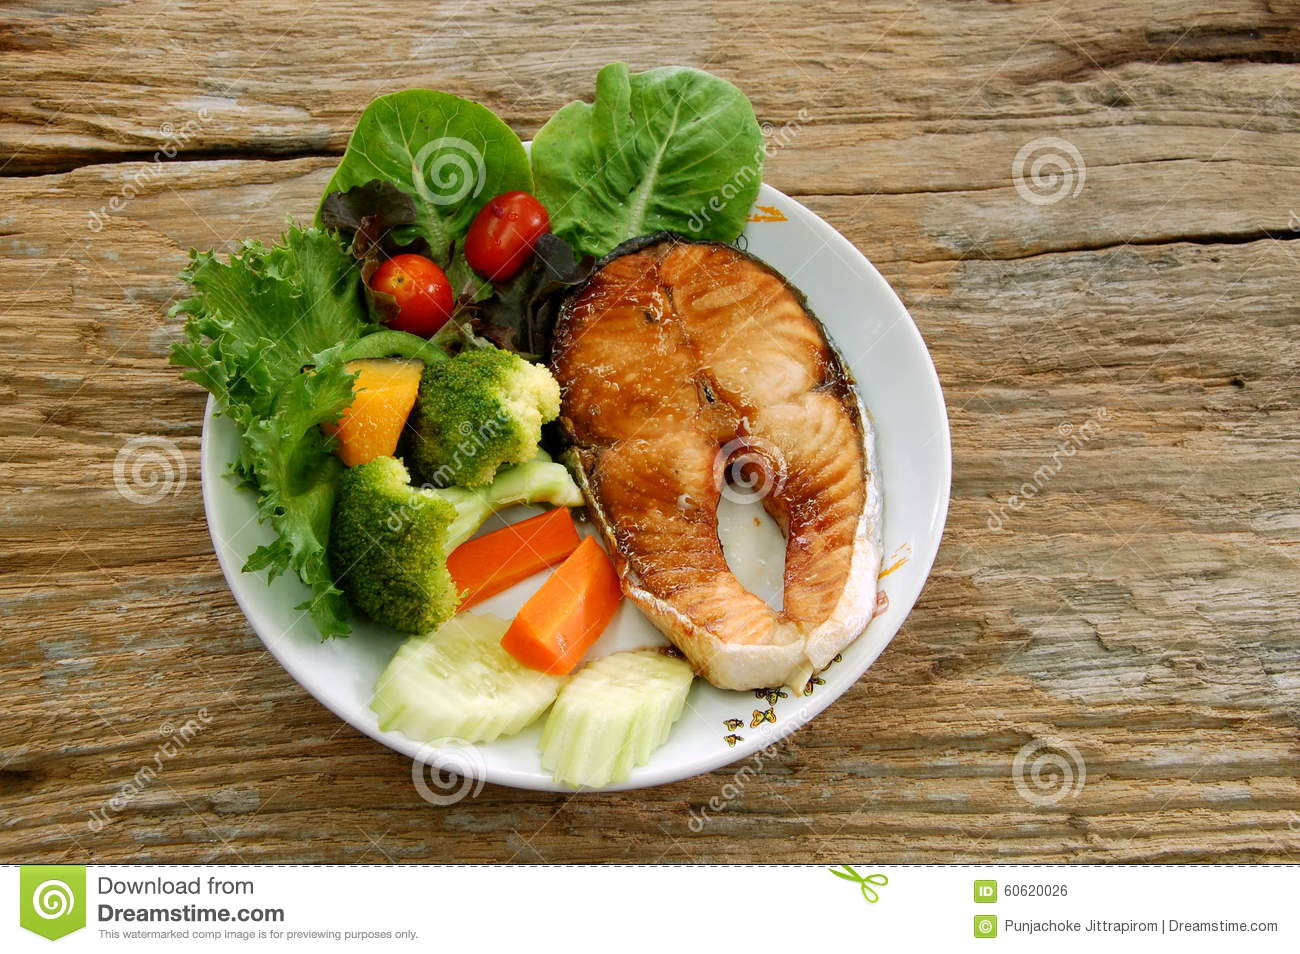 More fish dish is better stock photo image 60620026 for Fish and more